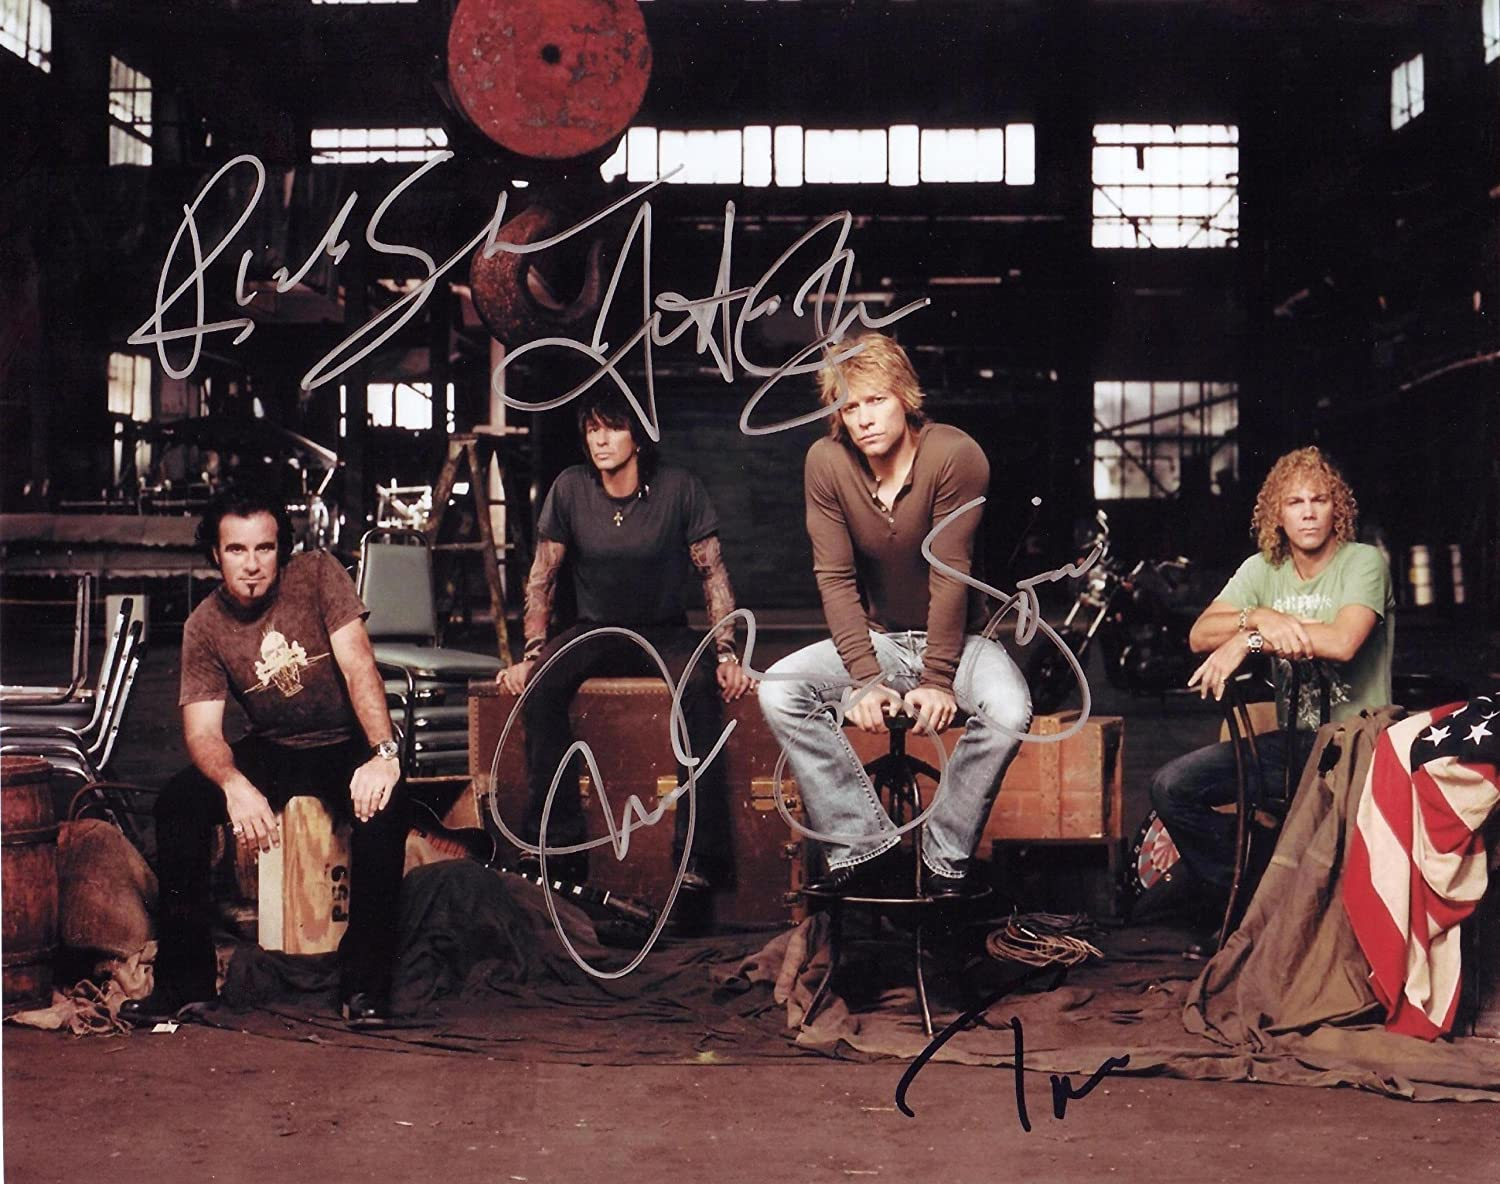 все цены на Bon Jovi Autographed Signed 8 X 10 RP Photo - Mint Condition онлайн